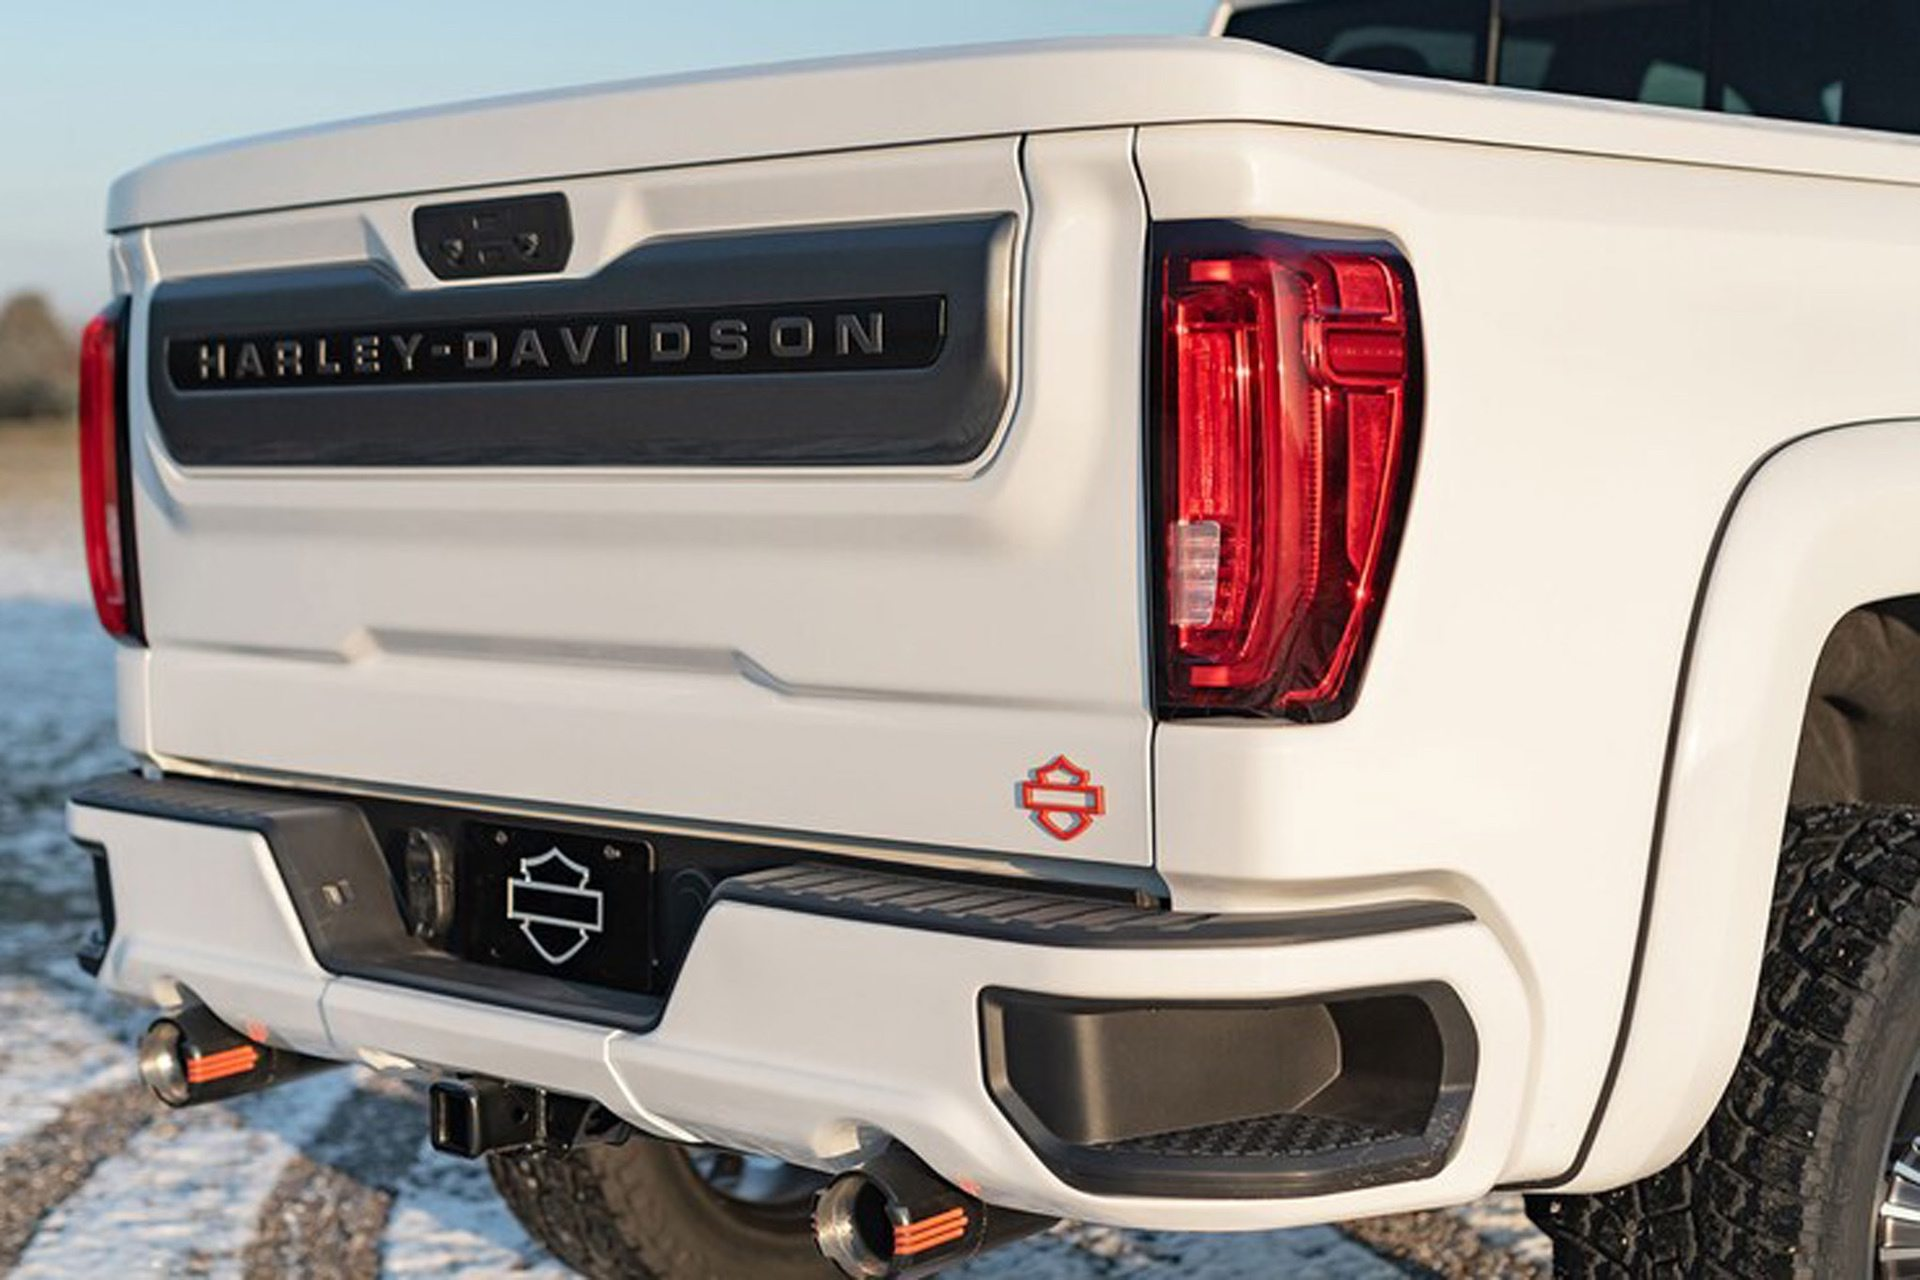 2020-GMC-Sierra-1500-Harley-Davidson-Edition-Tuscany-Automotive_0010